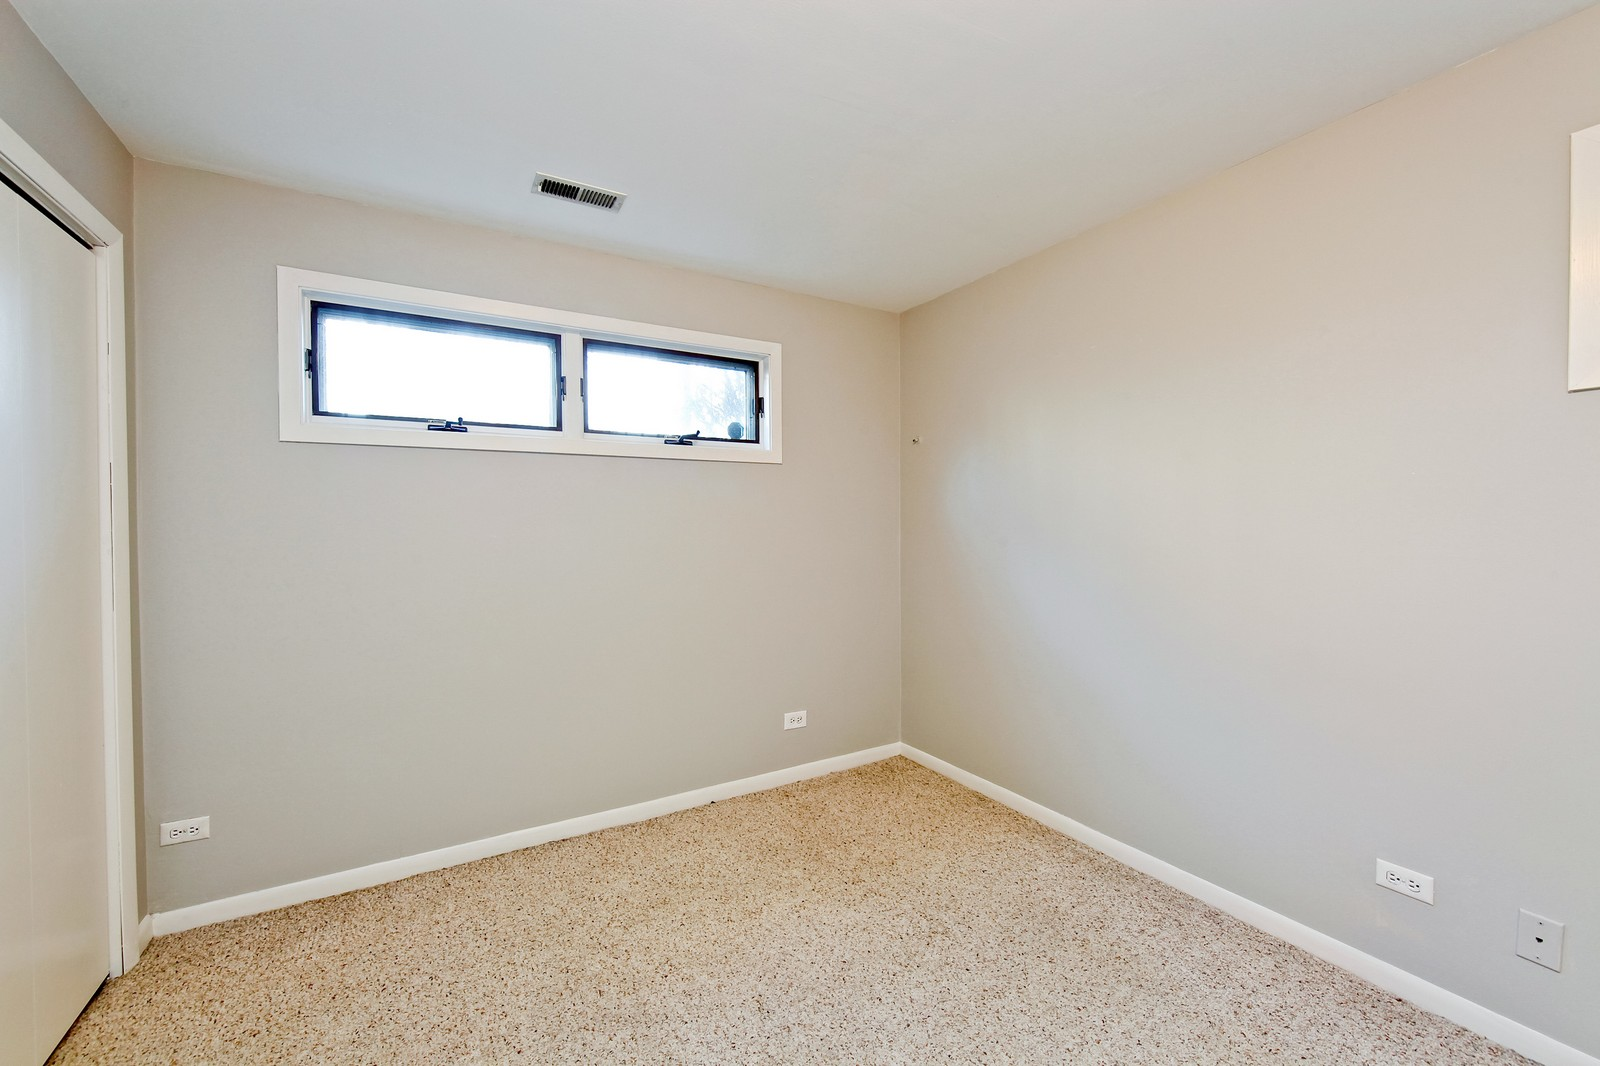 Real Estate Photography - 915 N. Racine Ave, 1NW, Chicago, IL, 60622 - 3rd Bedroom